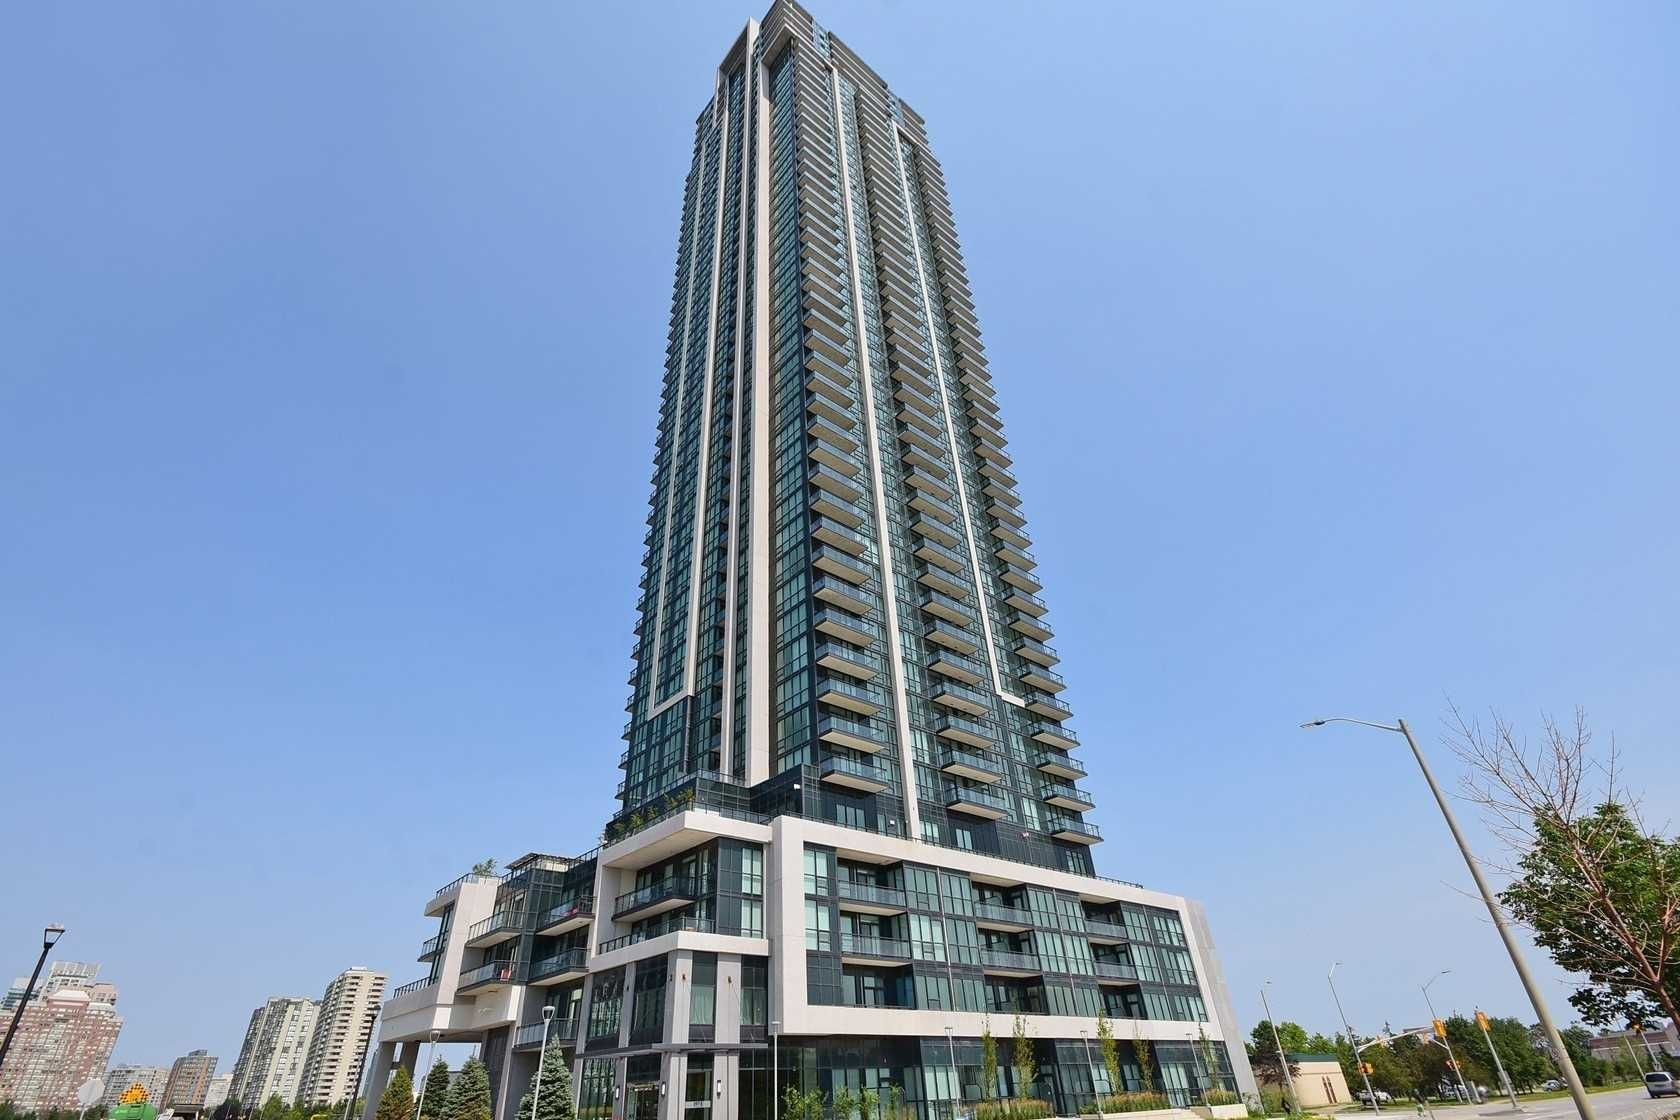 3975 Grand Park Dr, unit 3309 for rent in Toronto - image #1